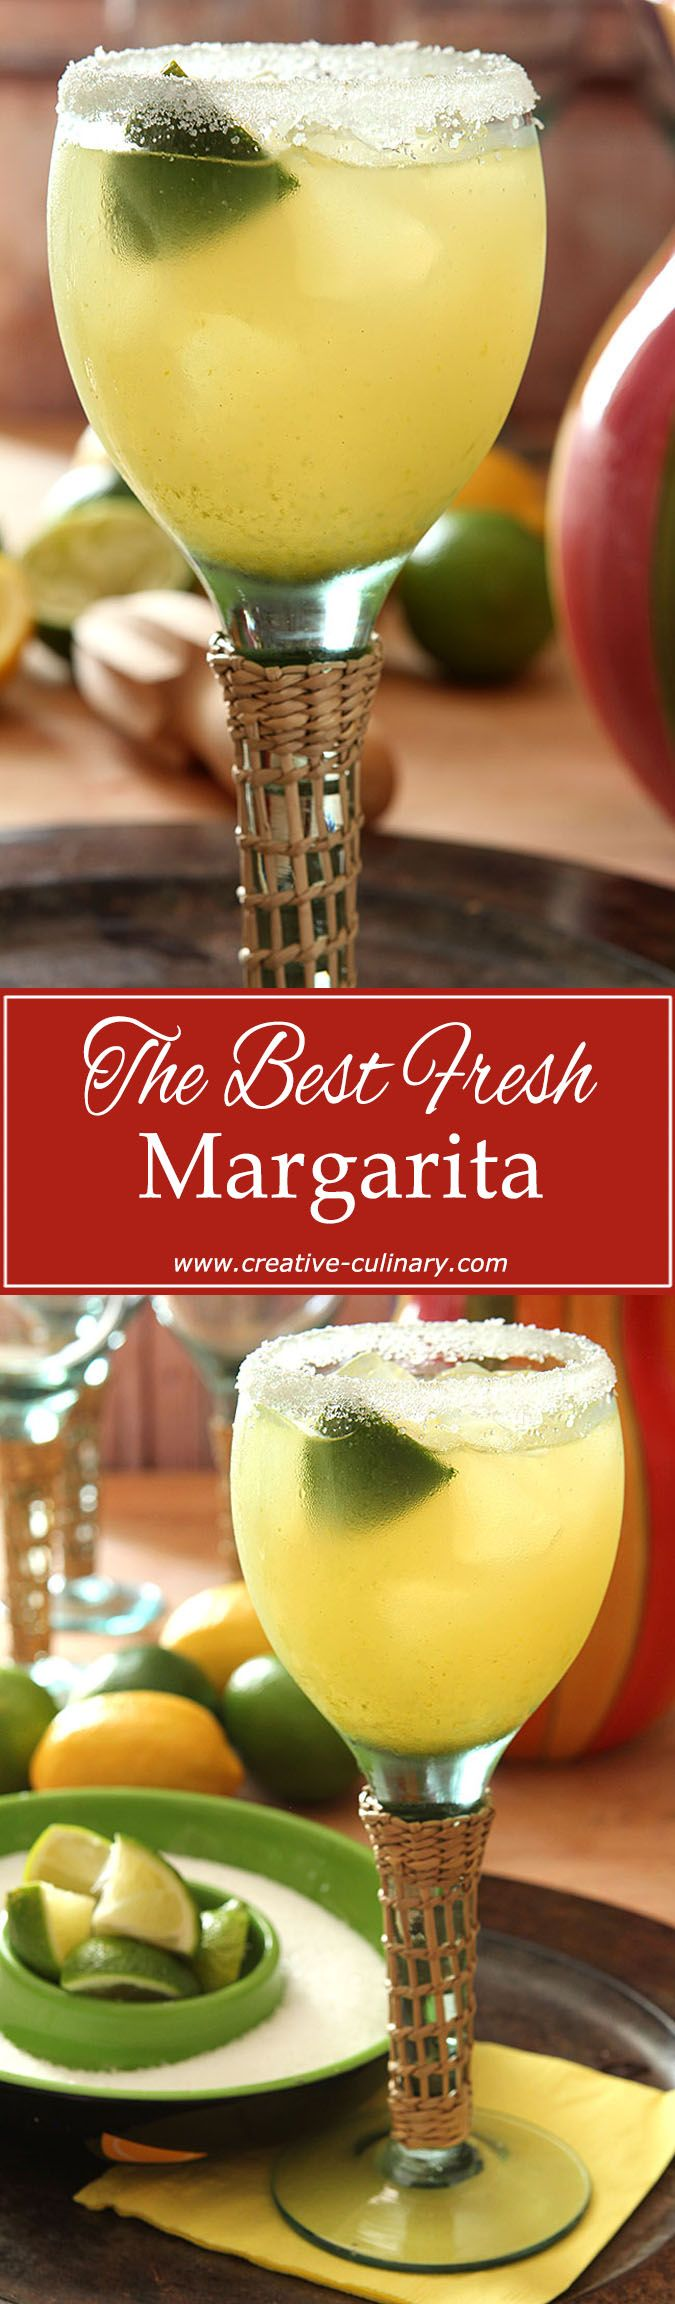 The BEST Fresh Margarita is simple. It means good tequila, fresh citrus juices and real orange liqueur. Simple and perfect! via @creativculinary